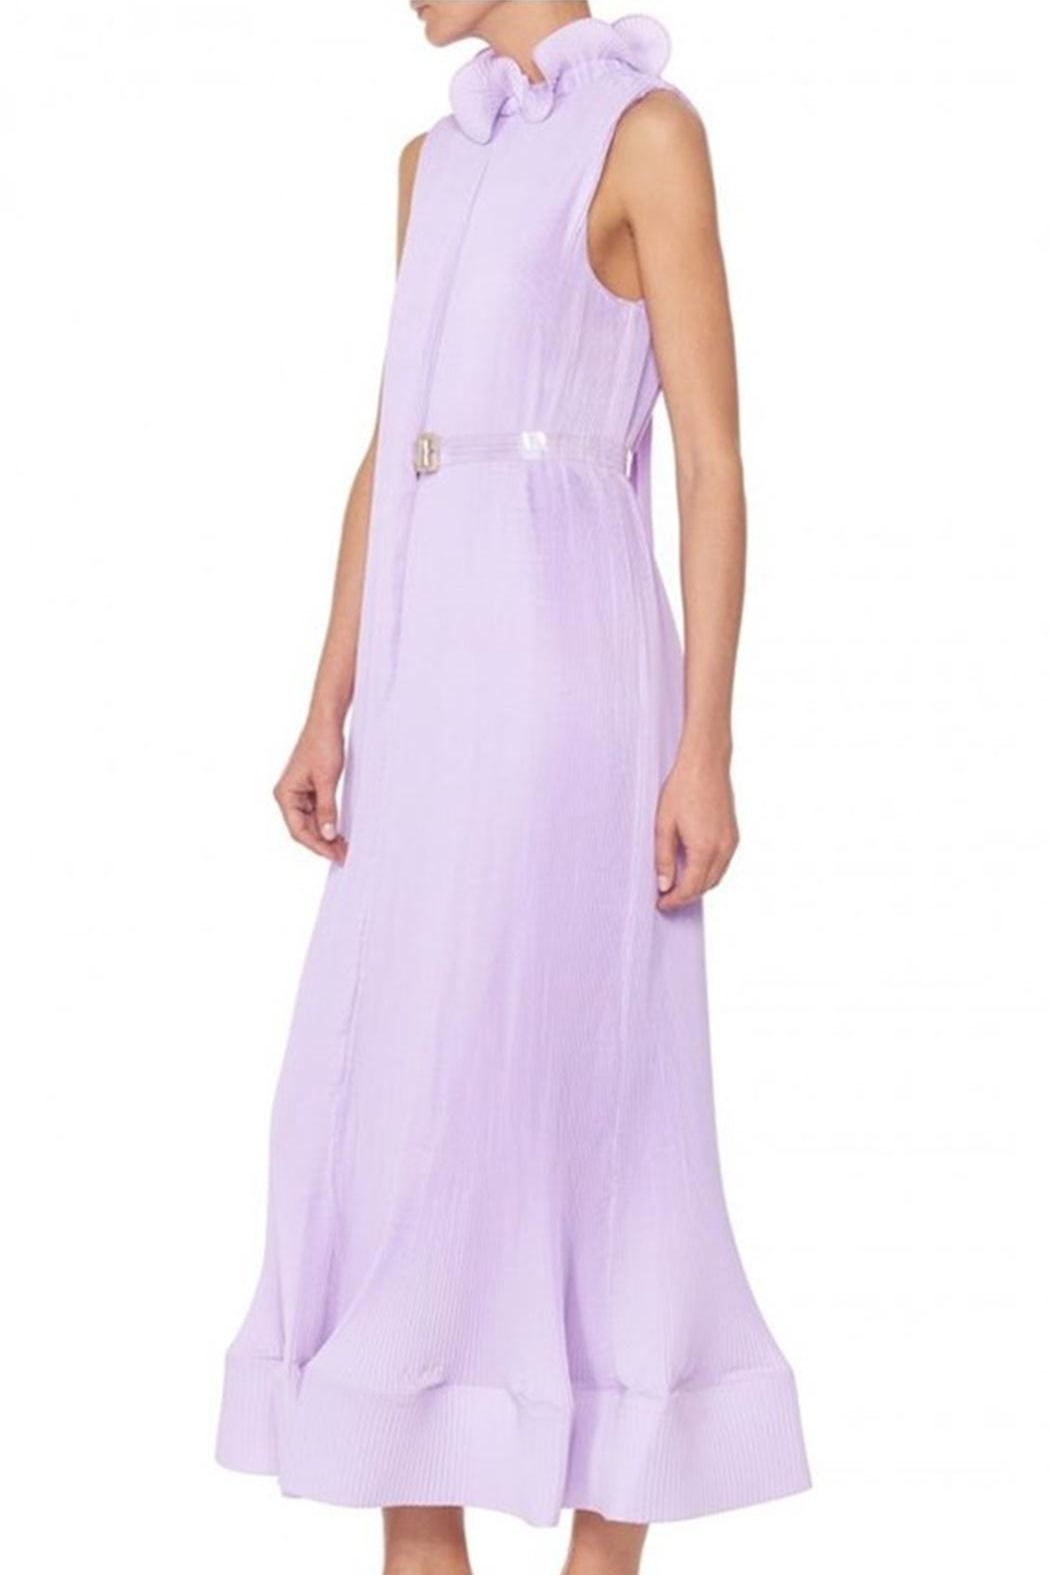 Tibi Pleating Sleeveless Dress - Front Full Image